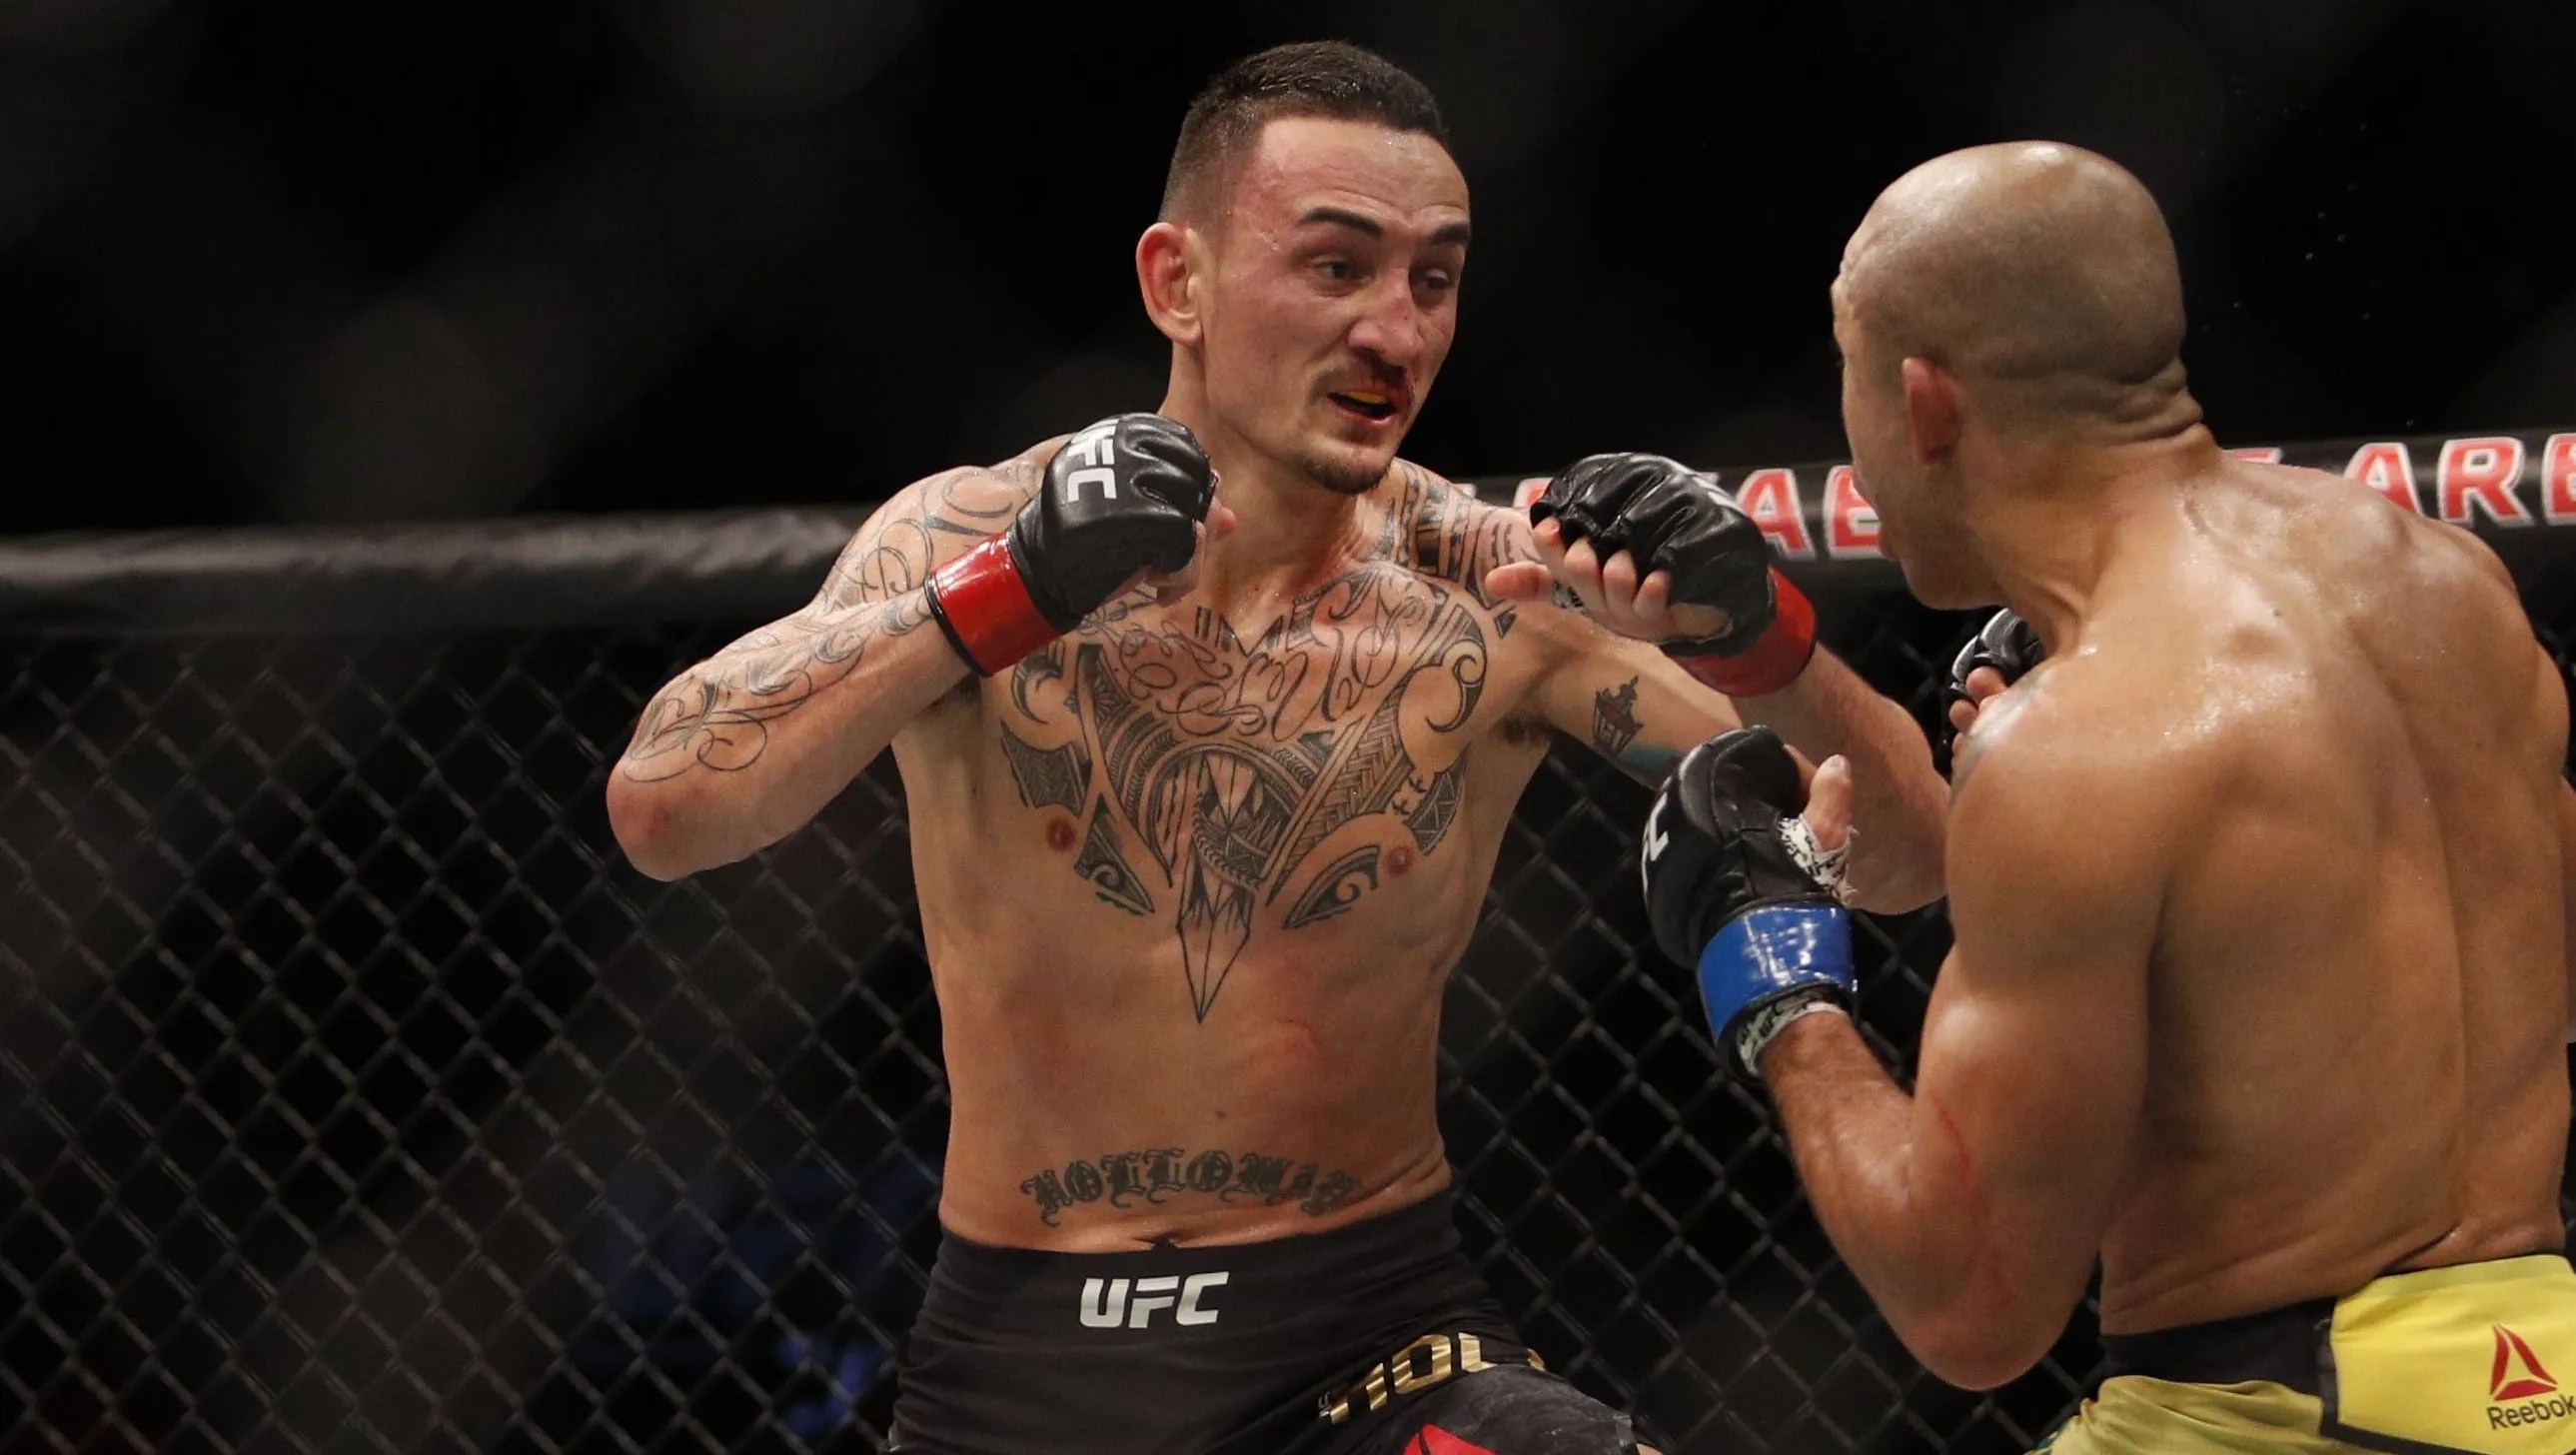 UFC 226: Max Holloway abruptly withdraws from title fight